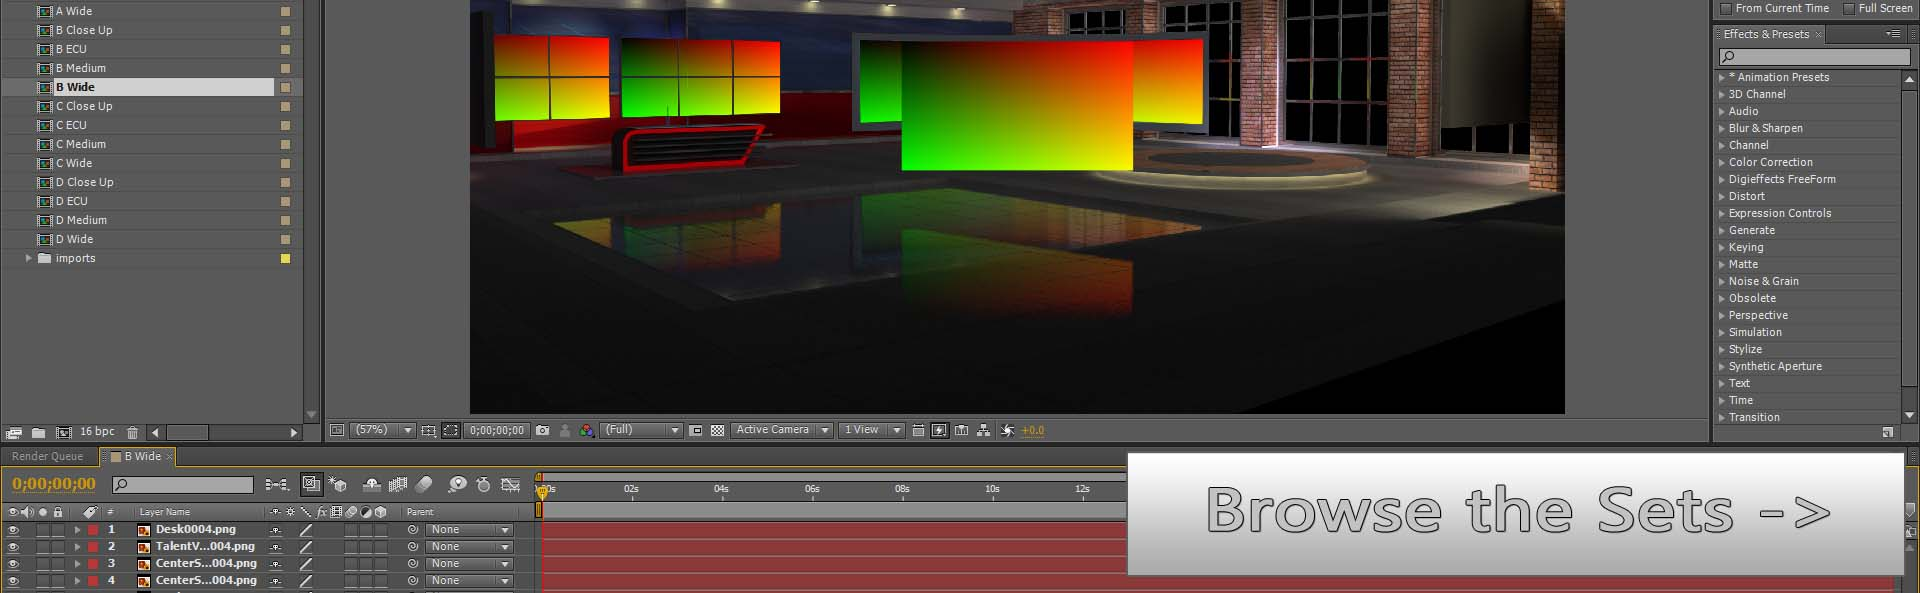 Wirecast Virtual Set Studios